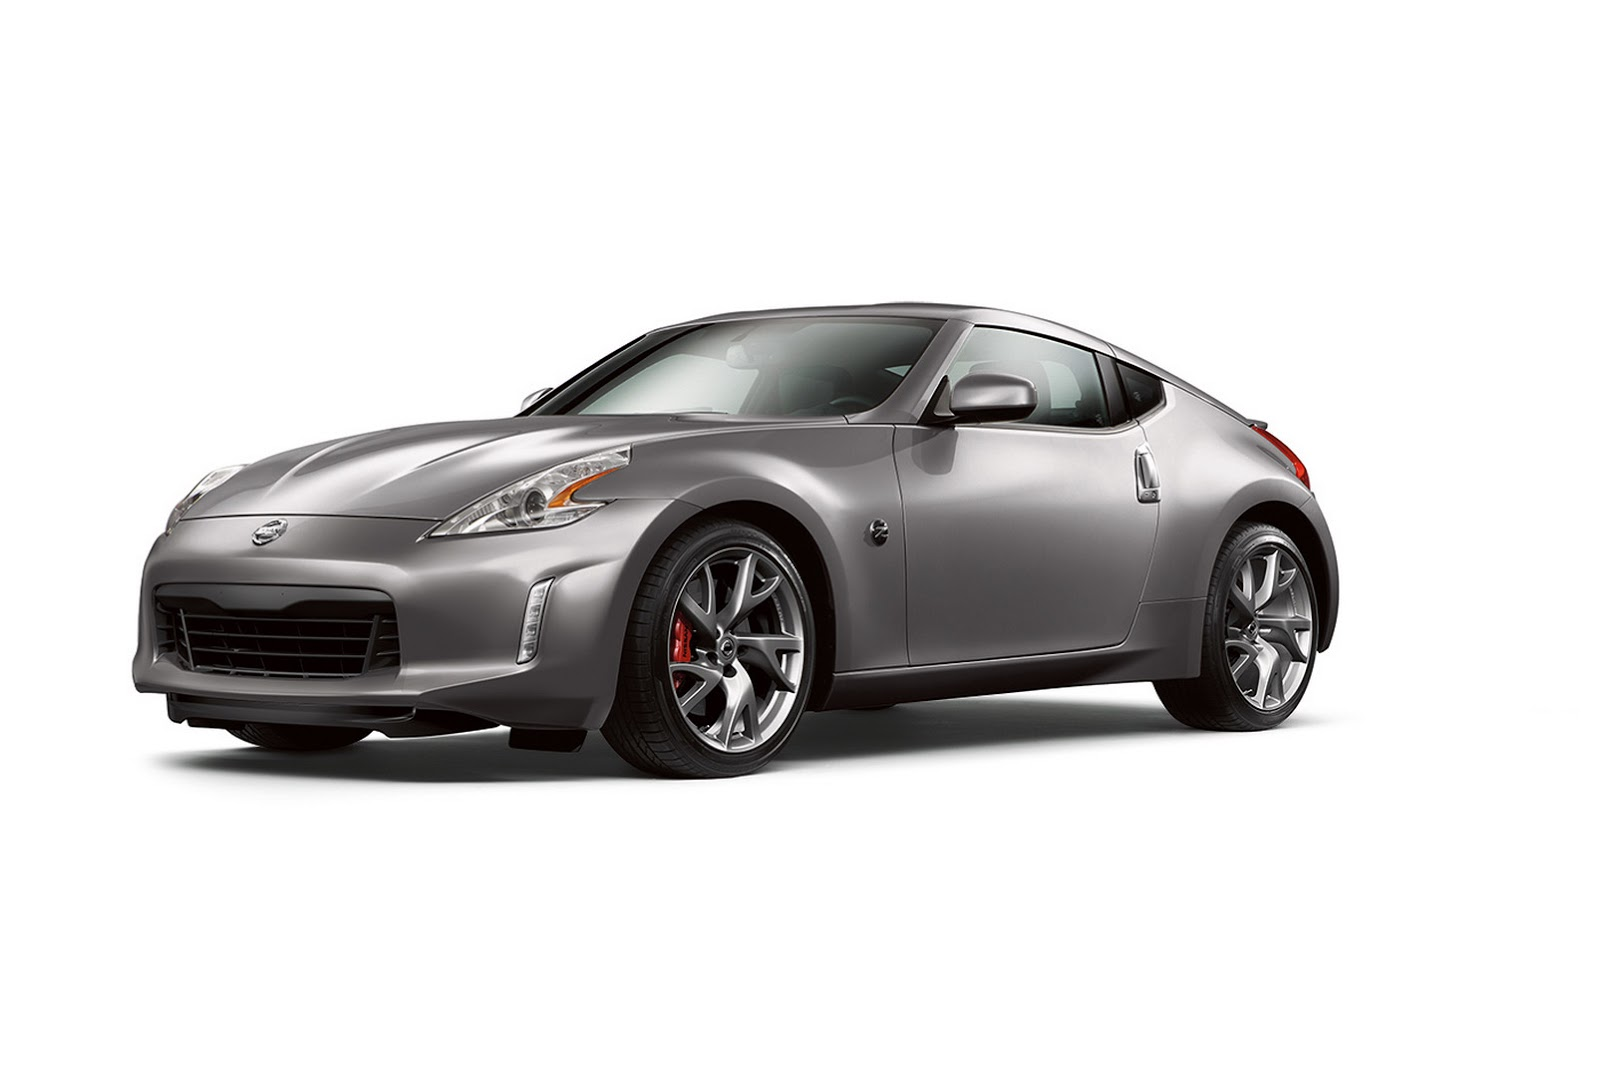 2016 Nissan 370Z Coupe And 370Z NISMO Get Fake Engine Noise System